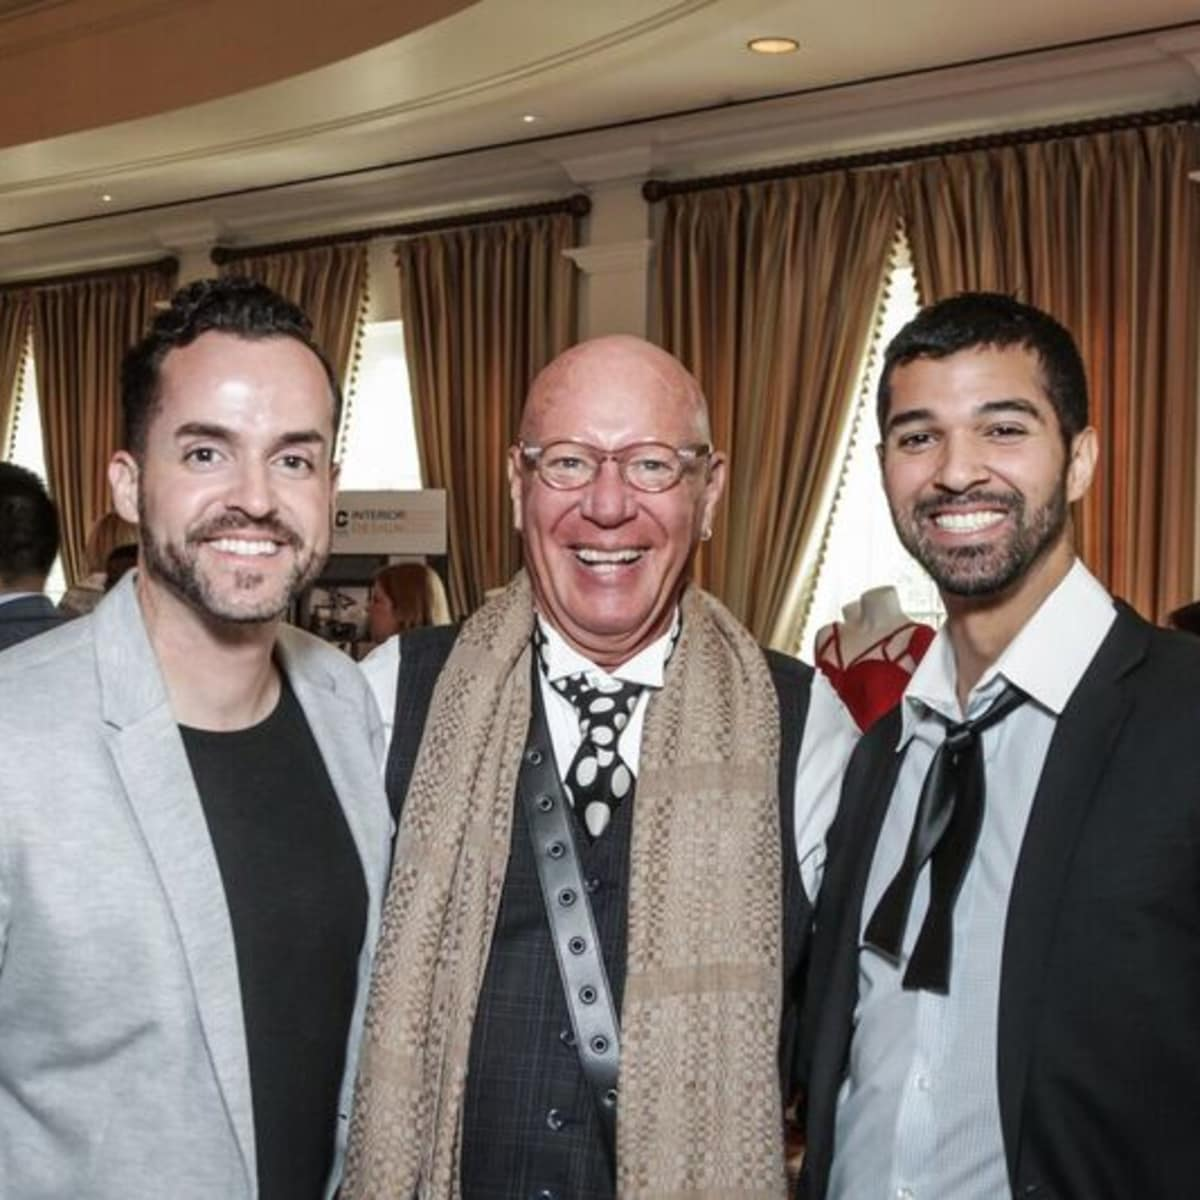 Fritz Macdonald, Kelly Amen, Angel Rios at Passion for Fashion luncheon